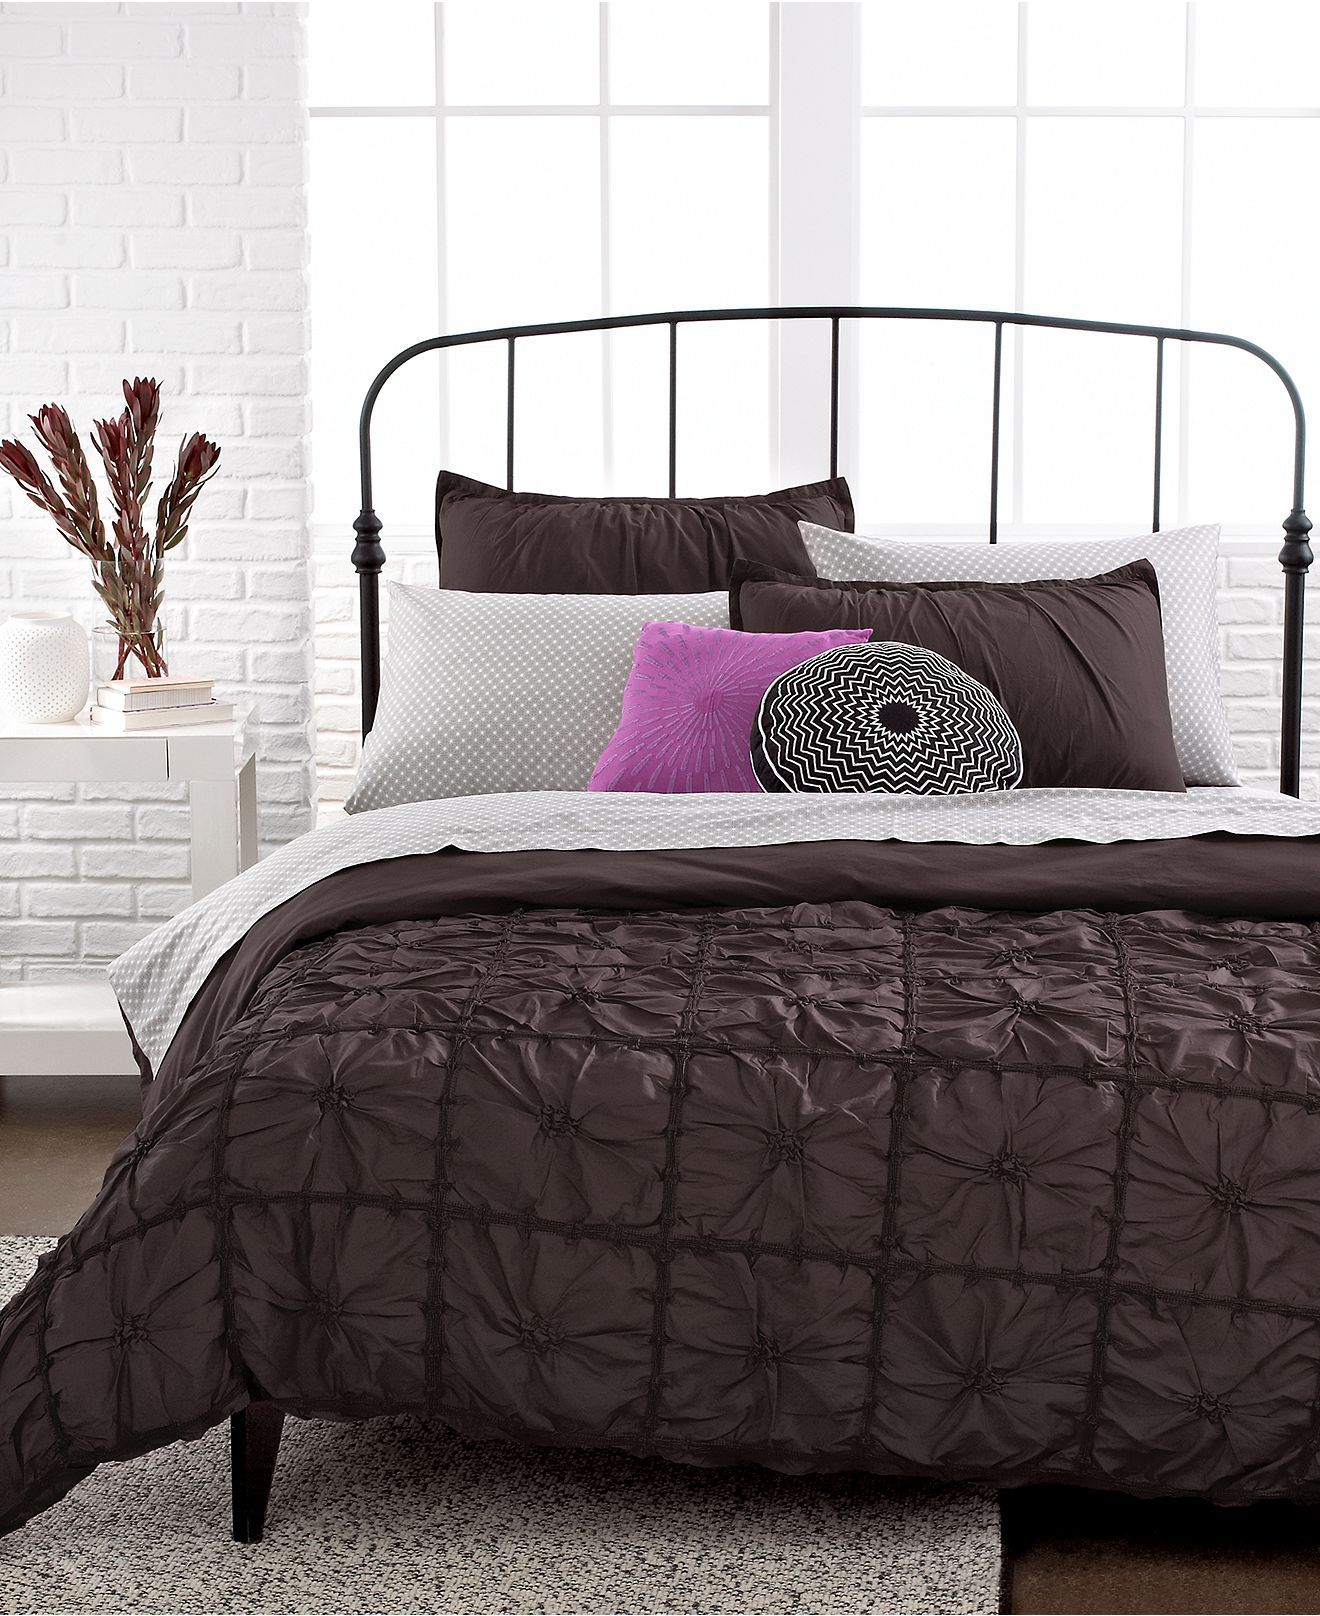 Knotted Squares 3 Piece Queen Duvet Cover Set - Sale Bed ...